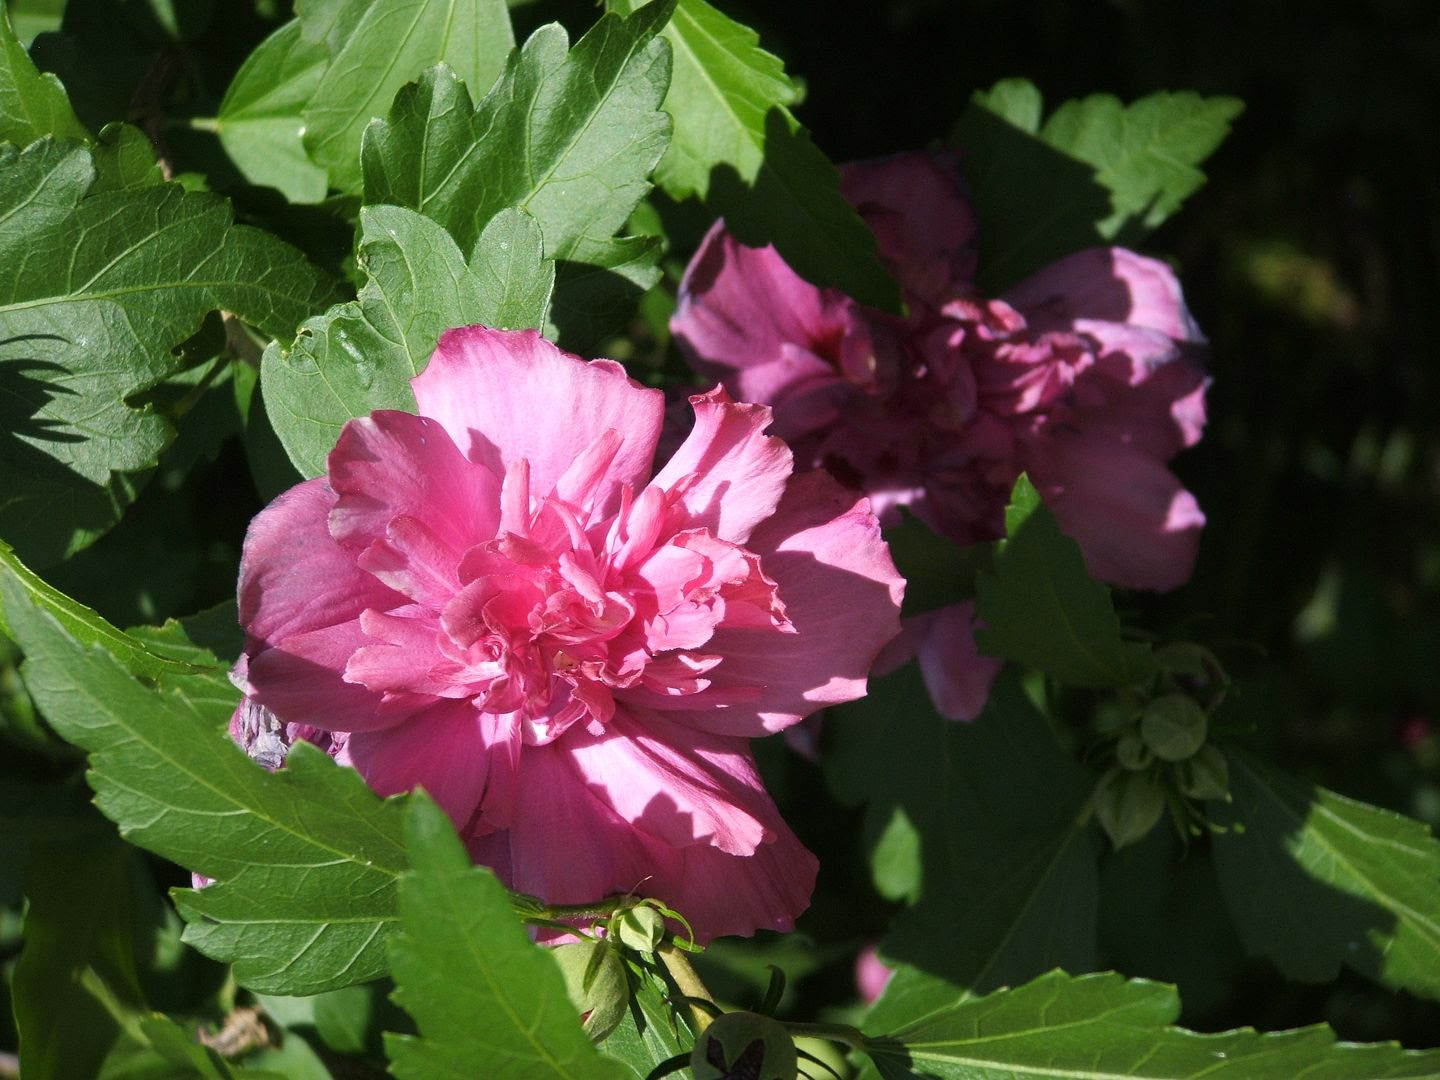 Rose of Sharon by Angie Ouellette-Tower for godsgrowinggarden.com photo 005_zps3b66973c.jpg